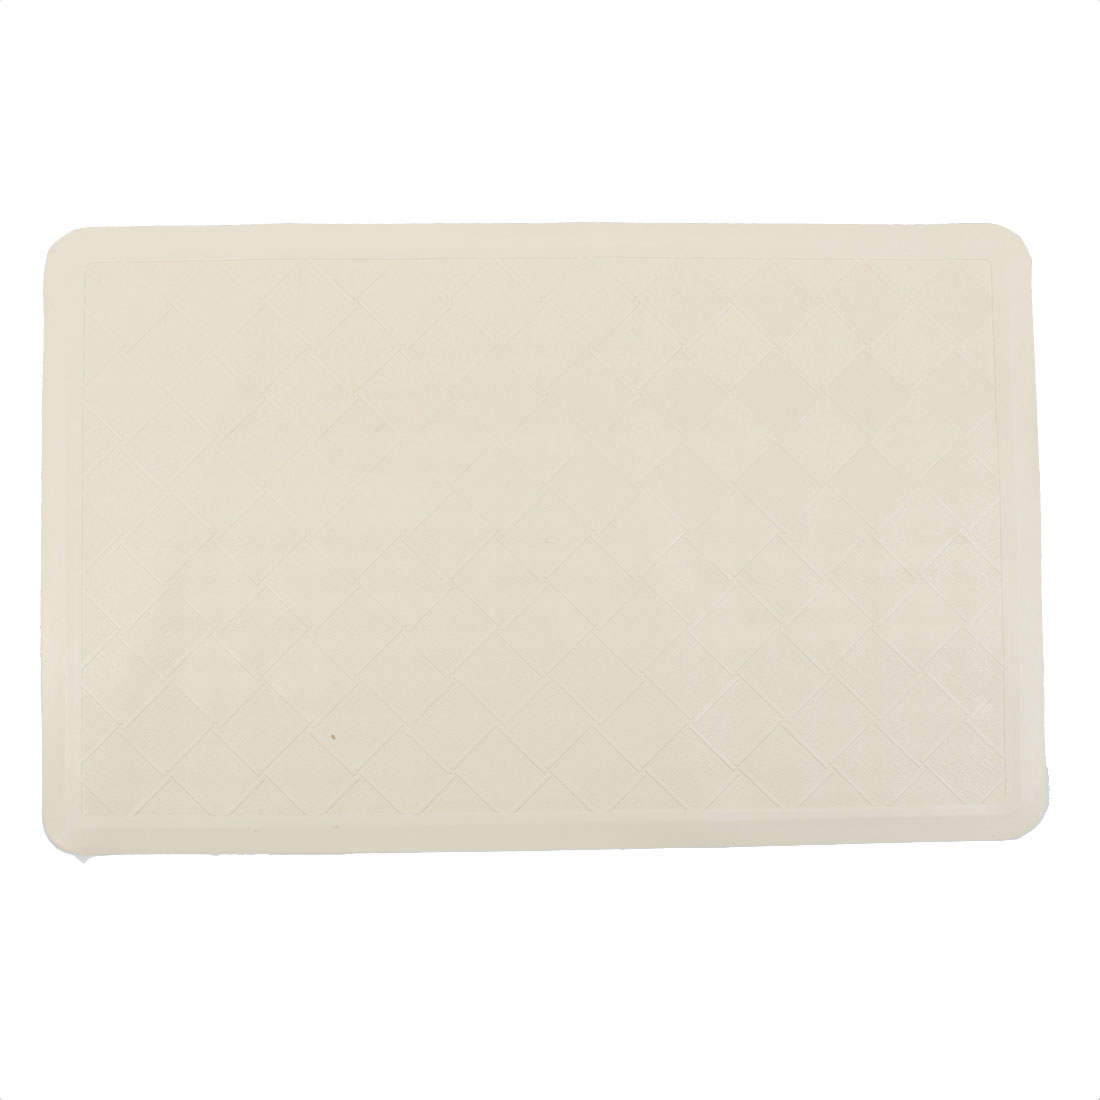 Hotel Bathroom Rubber Checked Non Slip Suction Floor Bath Mat Beige 35cm x 56cm